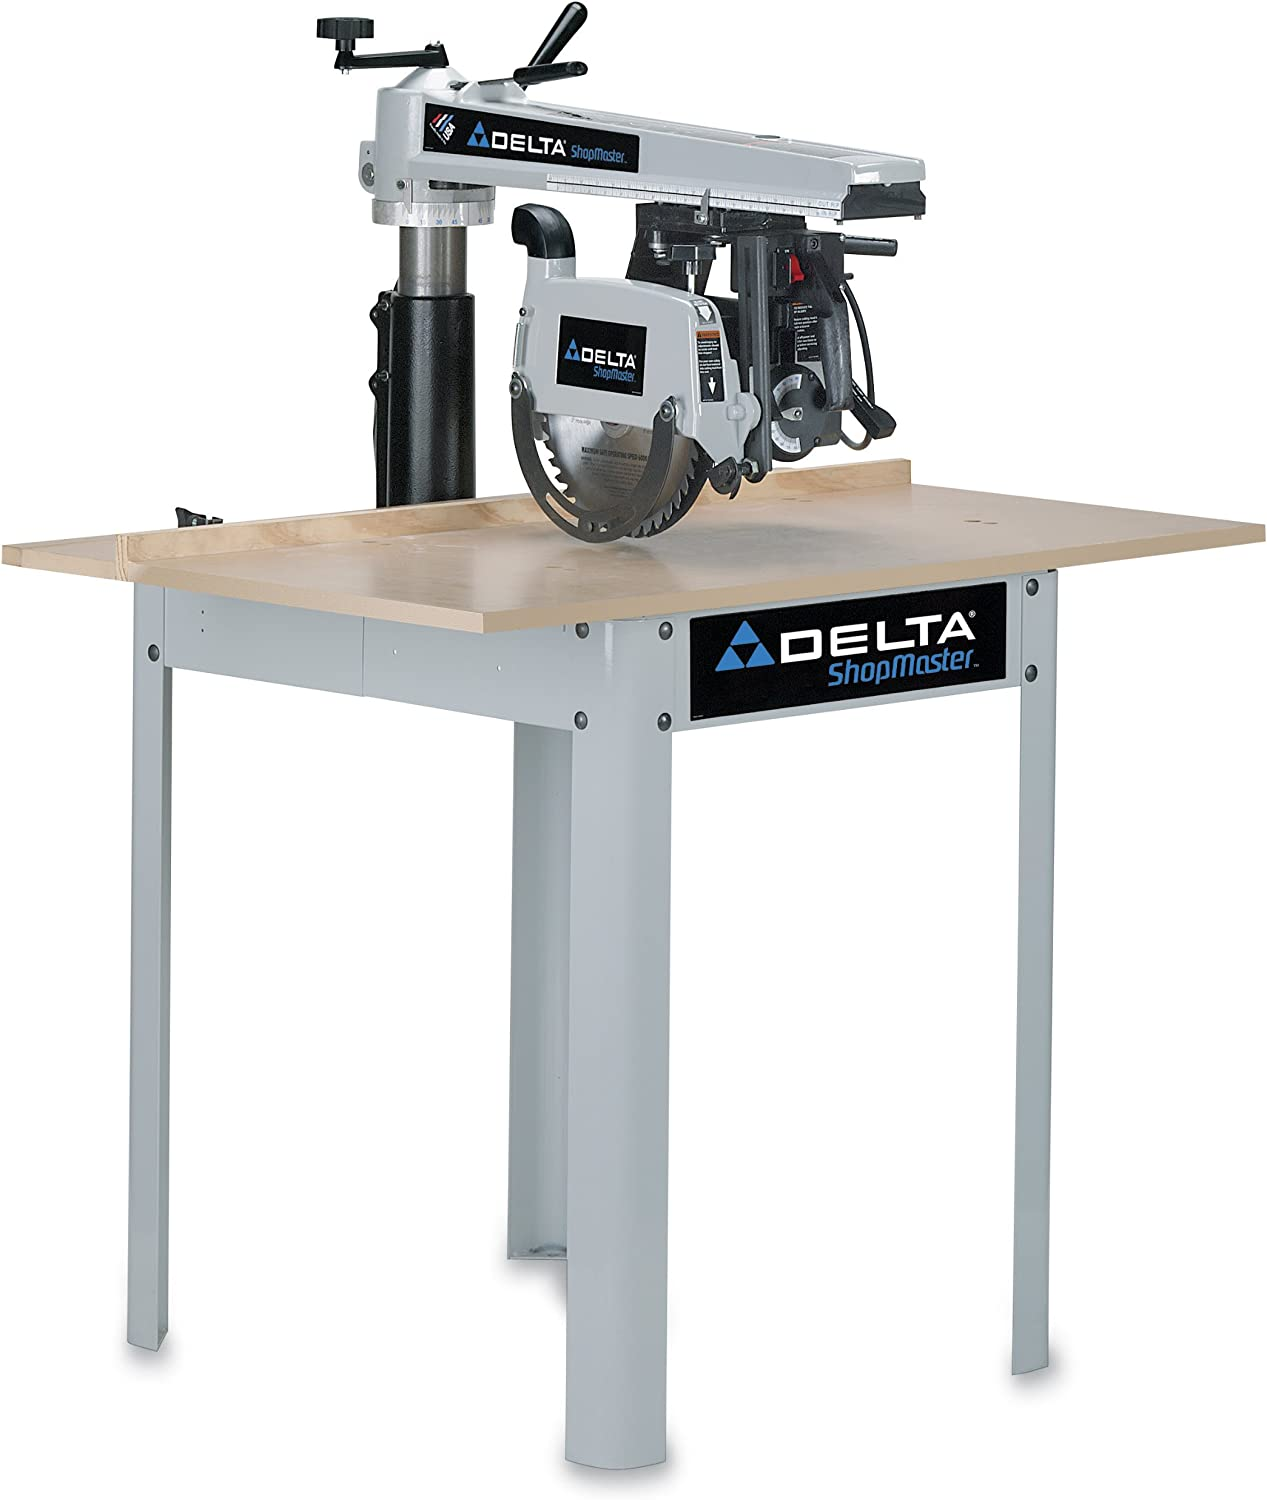 6. DELTA RS830 Radial Arm Saw